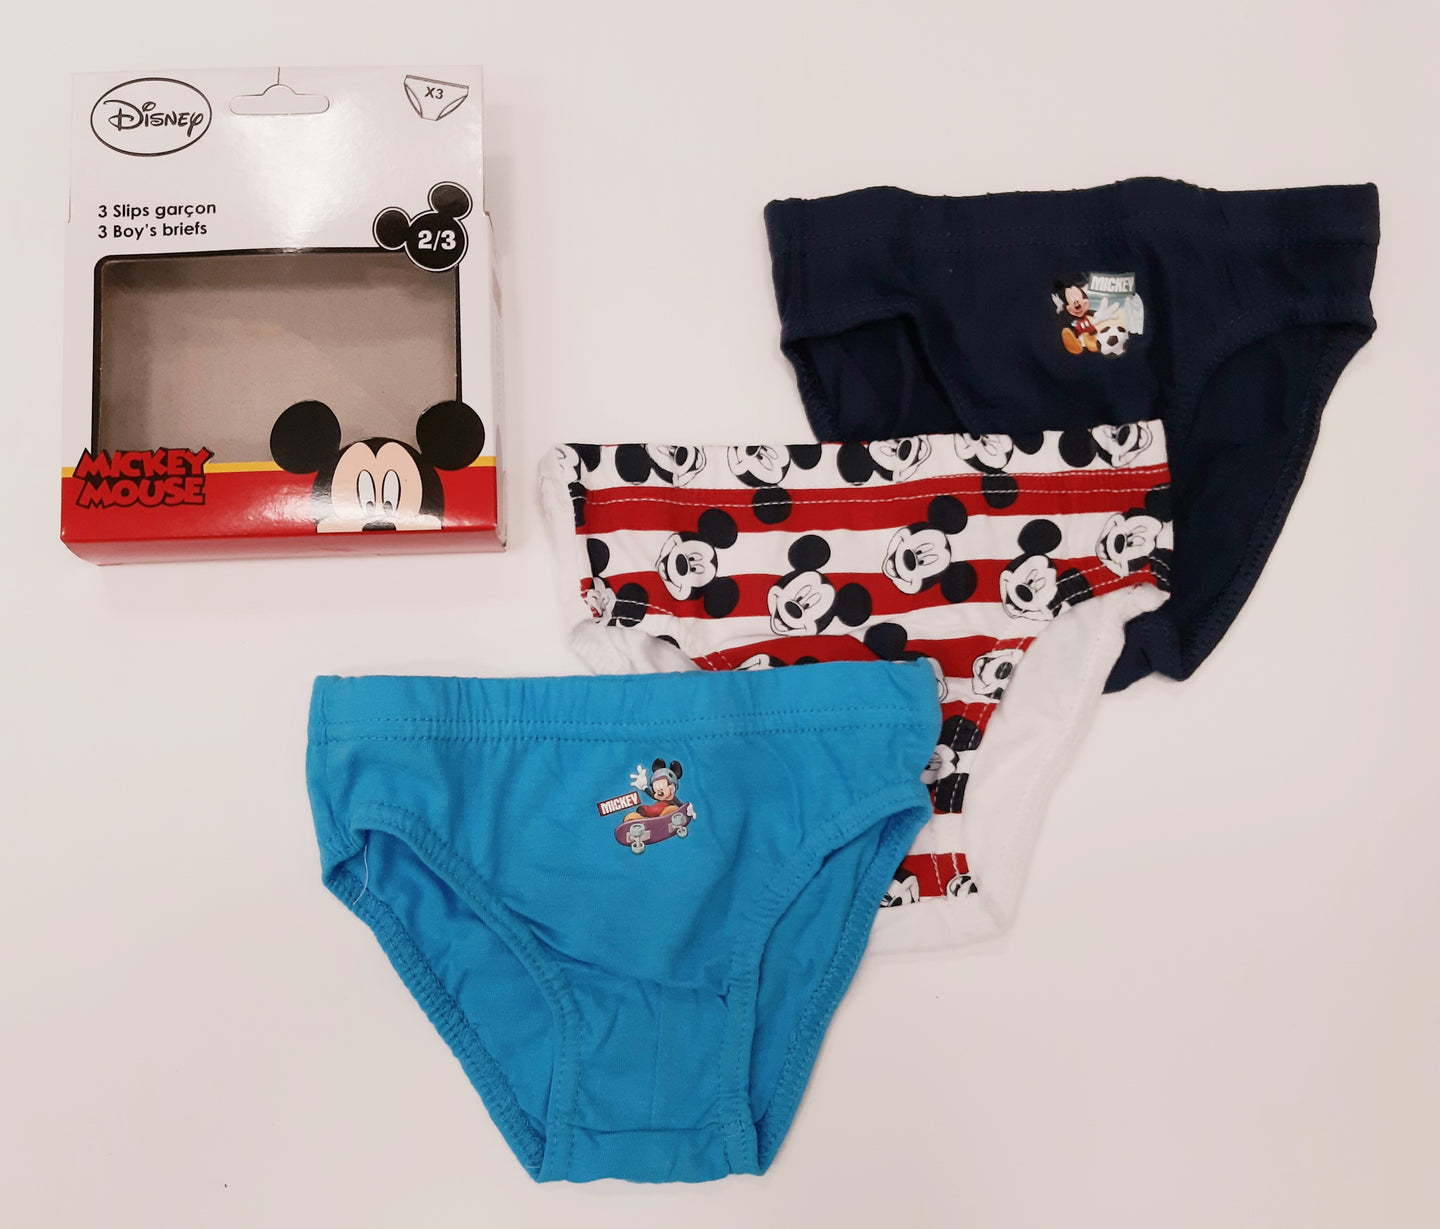 Mickey Mouse panties (Pkt of 3)